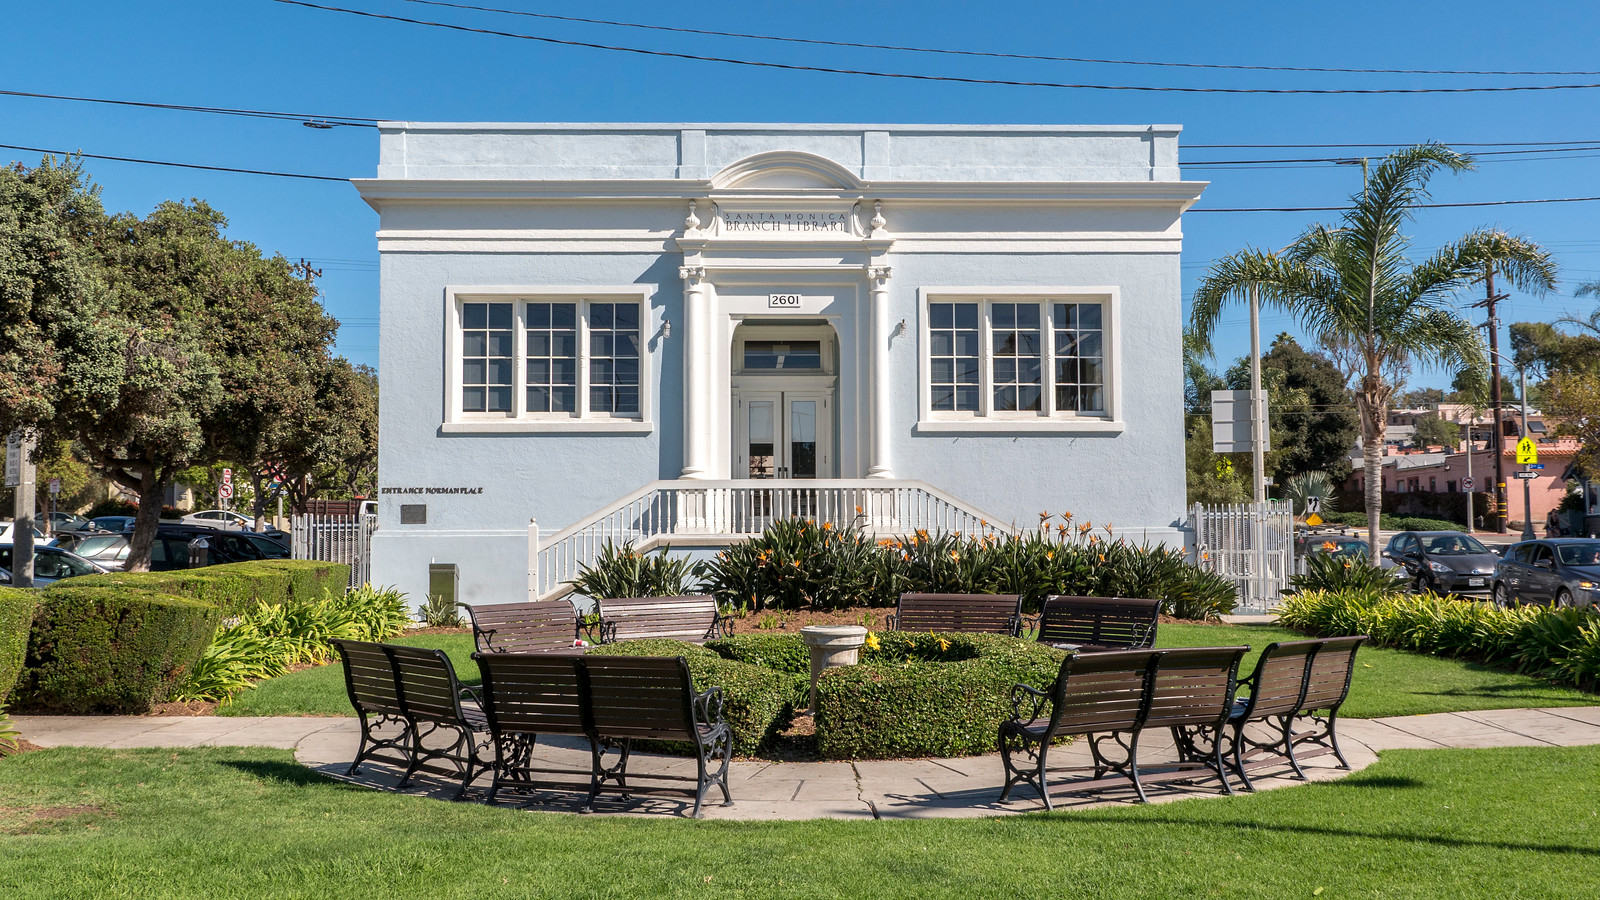 Venice library - 2 Days in Los Angeles Itinerary for First Timers